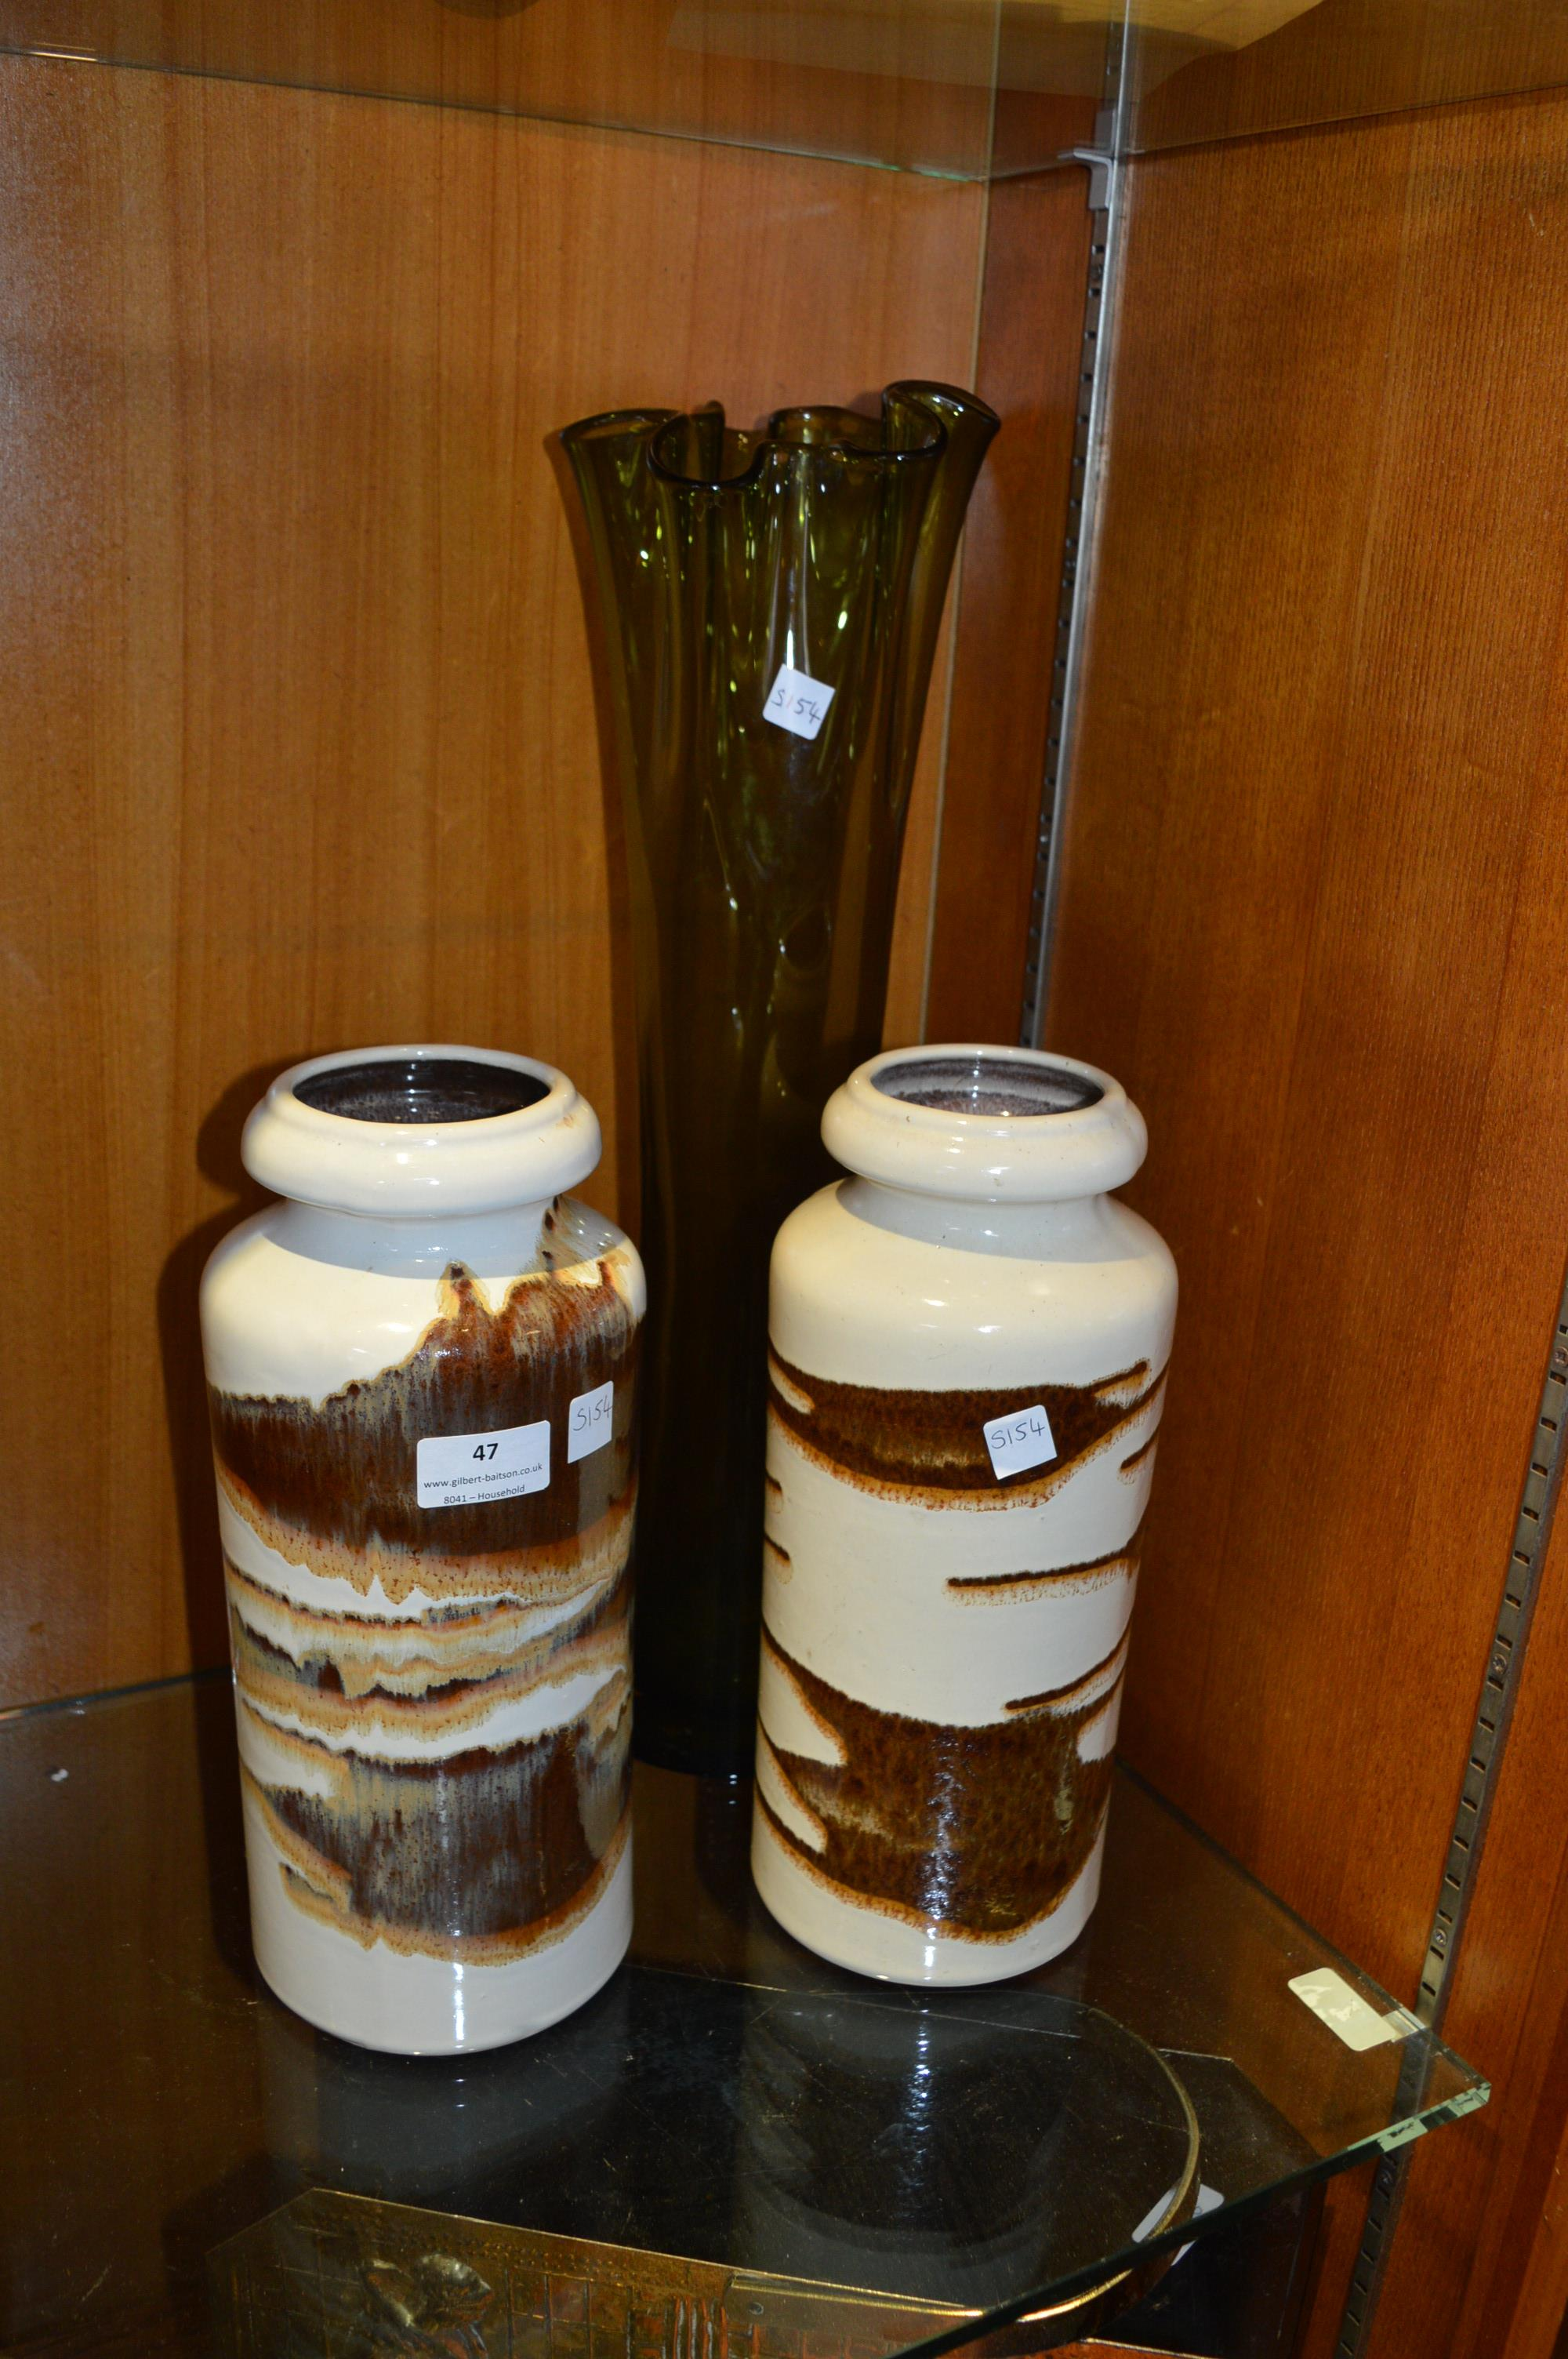 Lot 47 - Pair of West German Vases and a Green Glass Vase